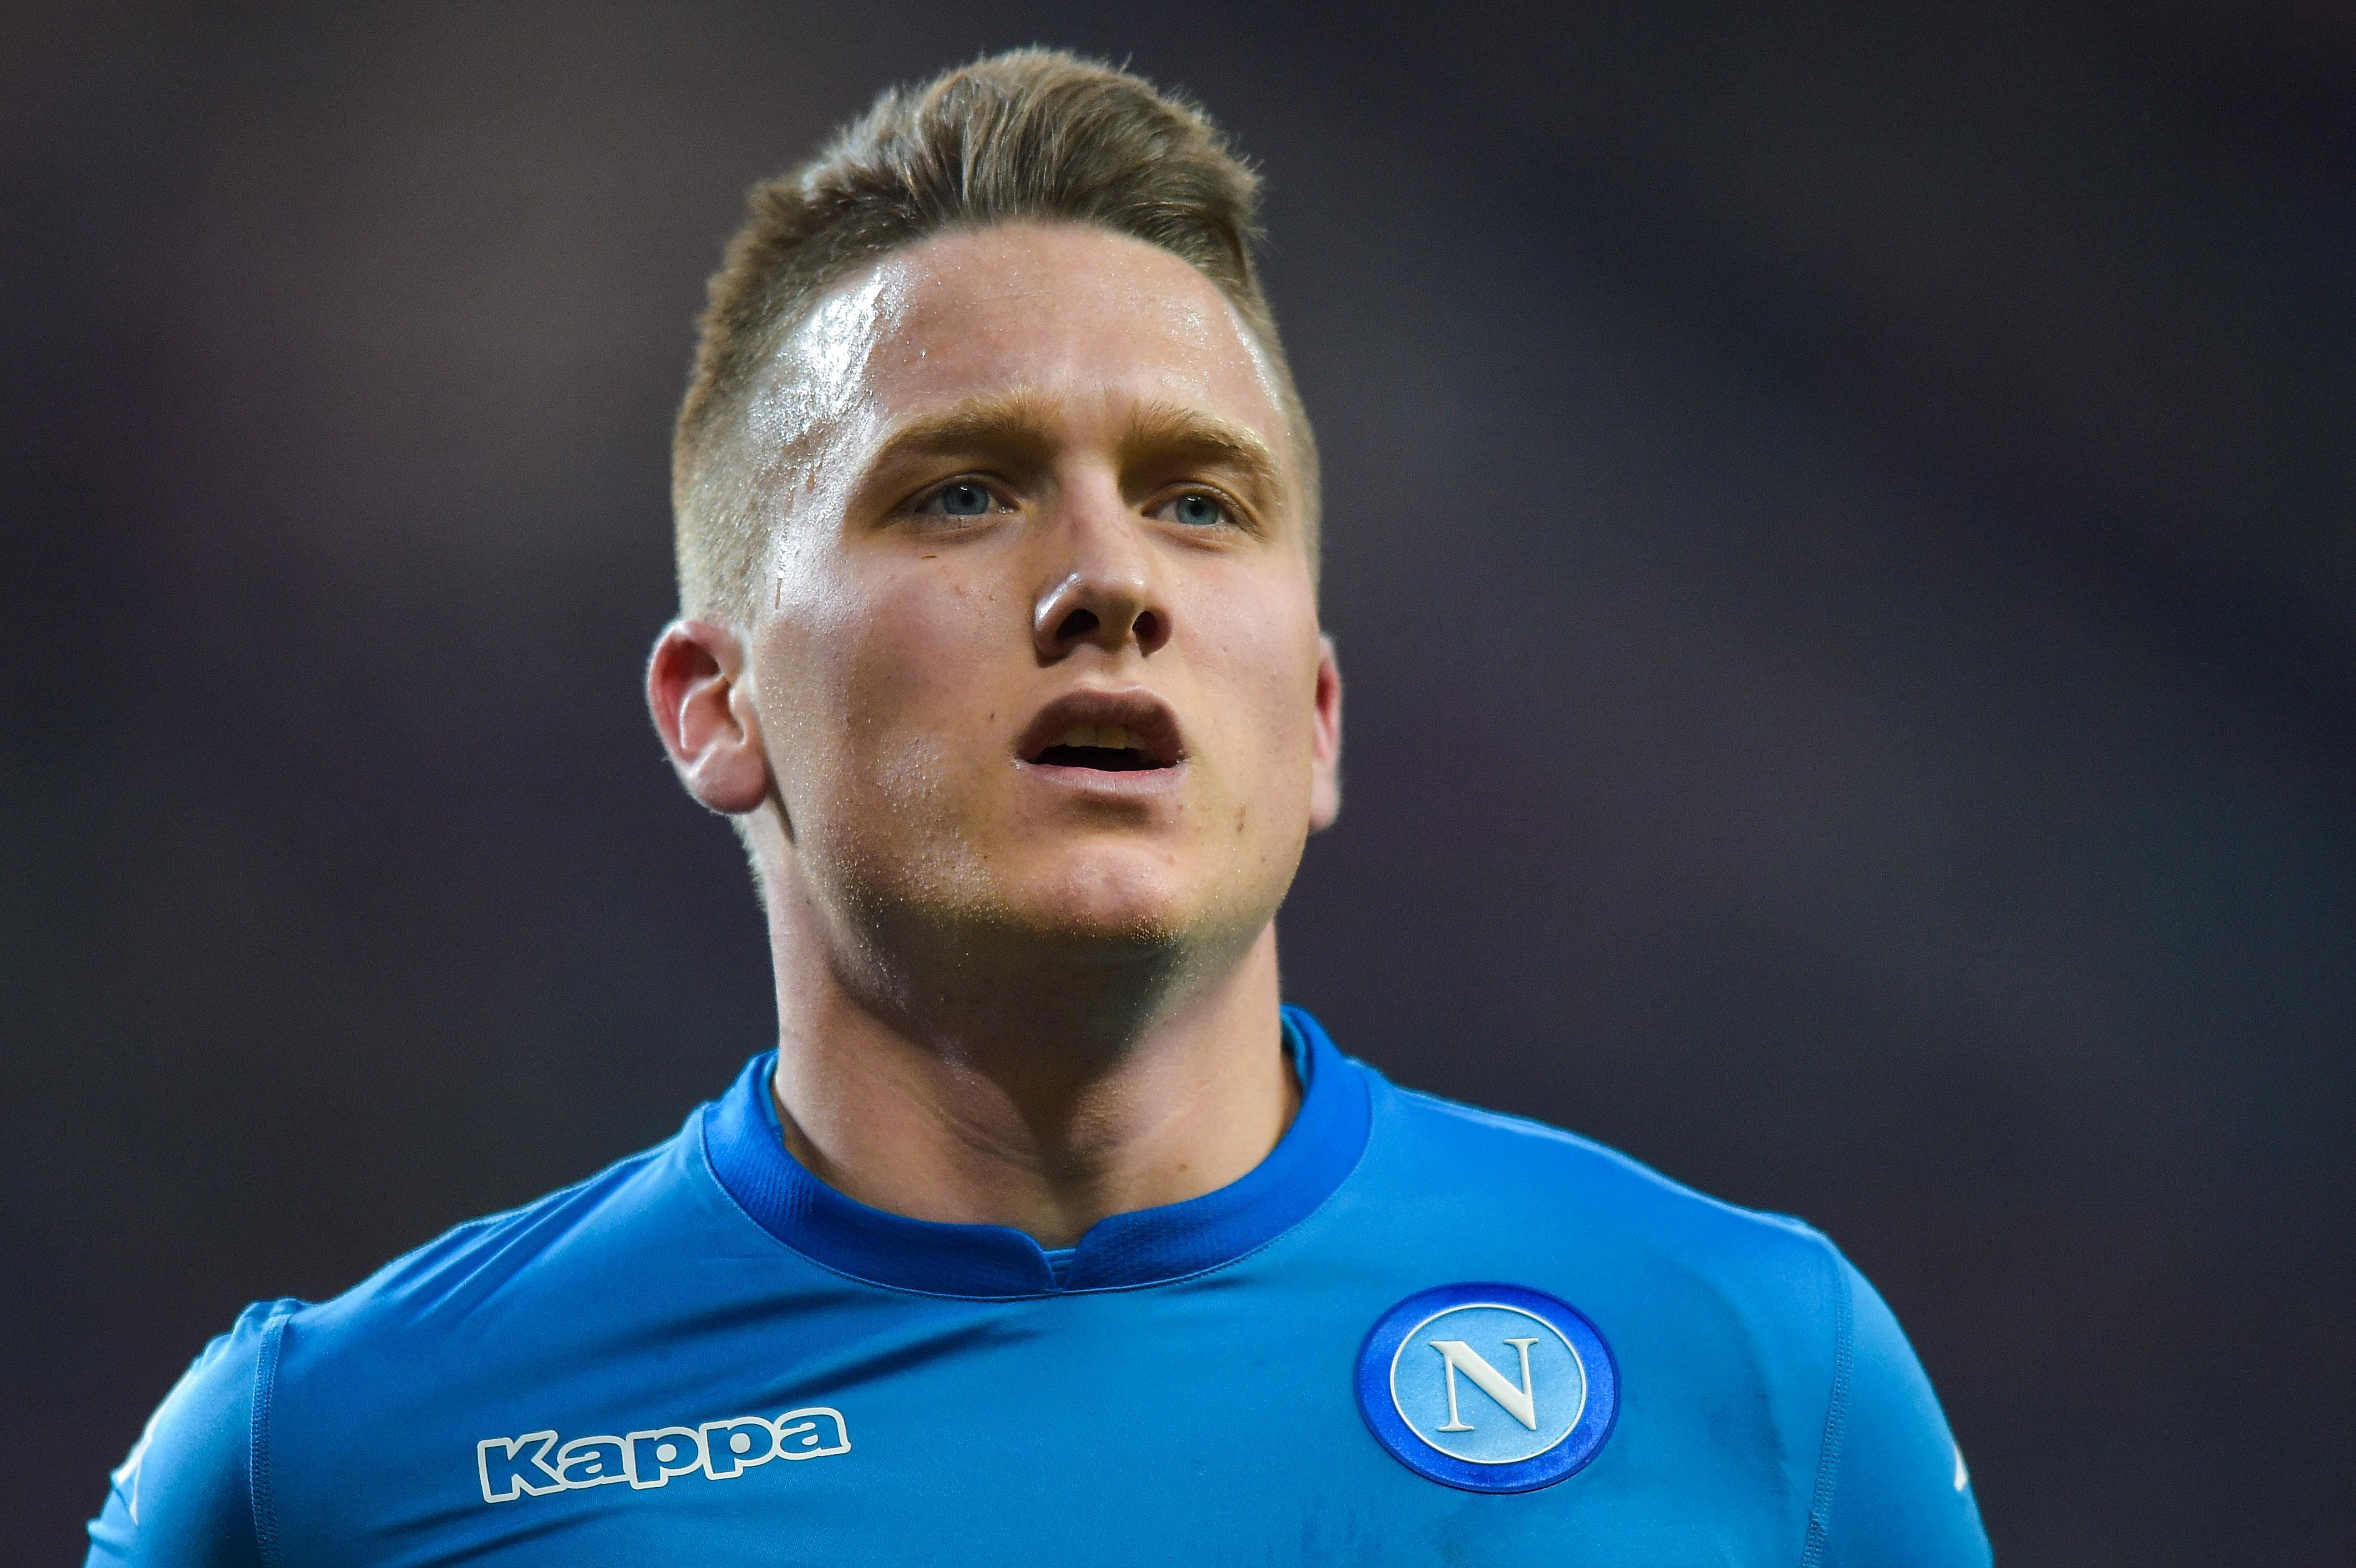 Liverpool target Piotr Zielinski has £57million price tag slapped on him by Napoli